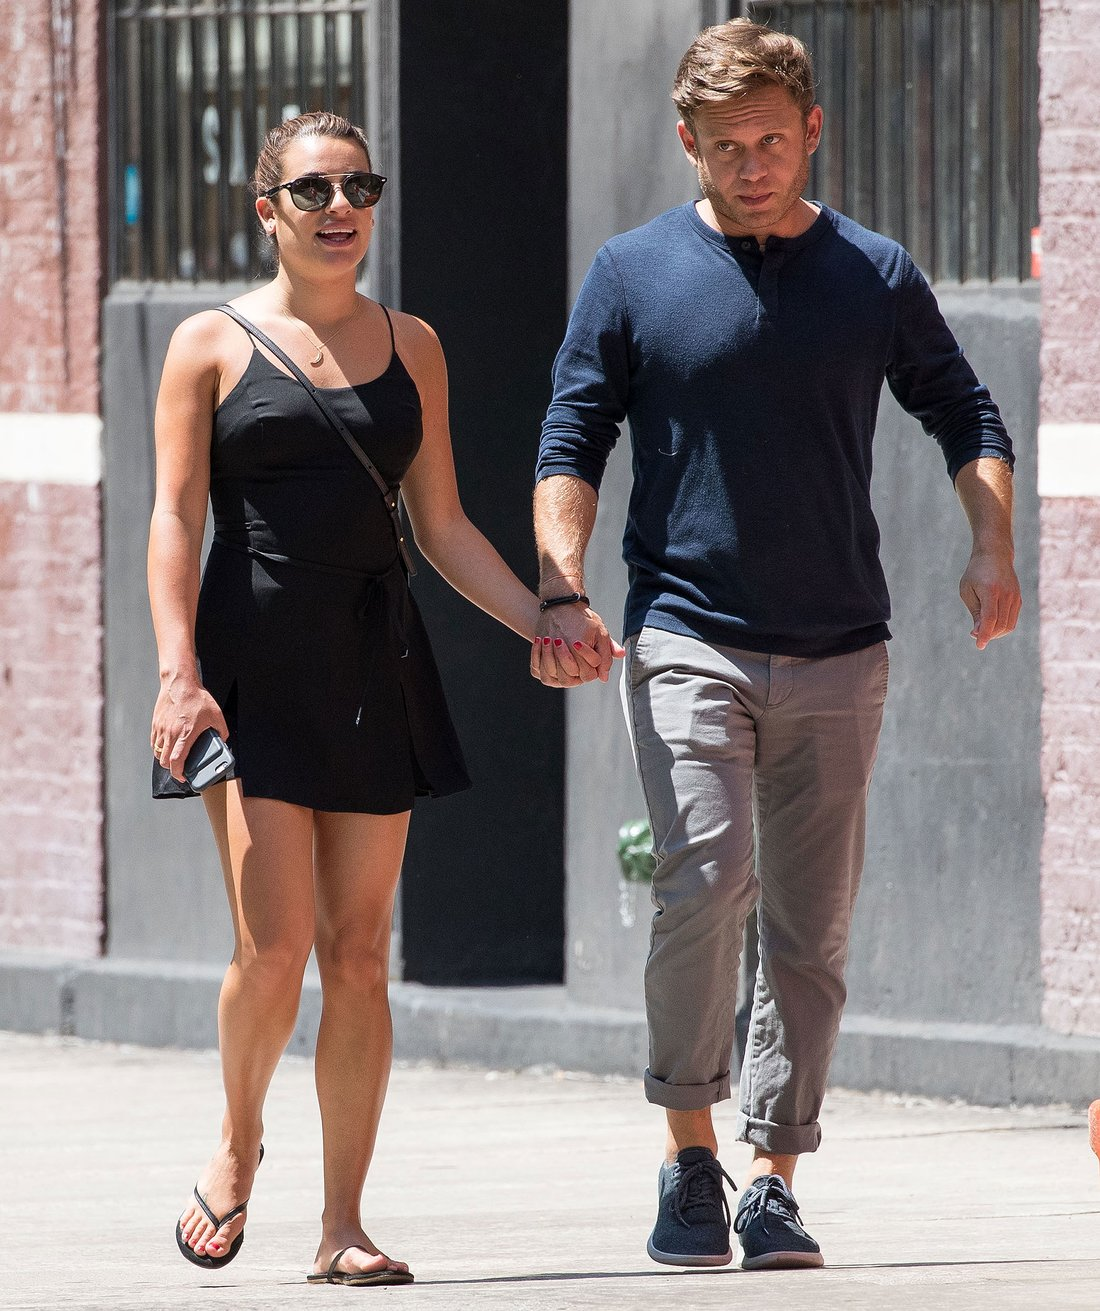 07/18/2017 PREMIUM EXCLUSIVE: NEW COUPLE ALERT! Lea Michele is spotted holding hands with Zandy Reich in New York City. Lea stepped out in a little black dress and held hands tightly with Reich, the president of AYR, a women's clothing company. Michele was seen just days after the four-year anniversary of the untimely death of her past love interest and Glee co-star, Cory Monteith. Please byline:TheImageDirect.com *EXCLUSIVE PLEASE EMAIL sales@theimagedirect.com FOR FEES BEFORE USE